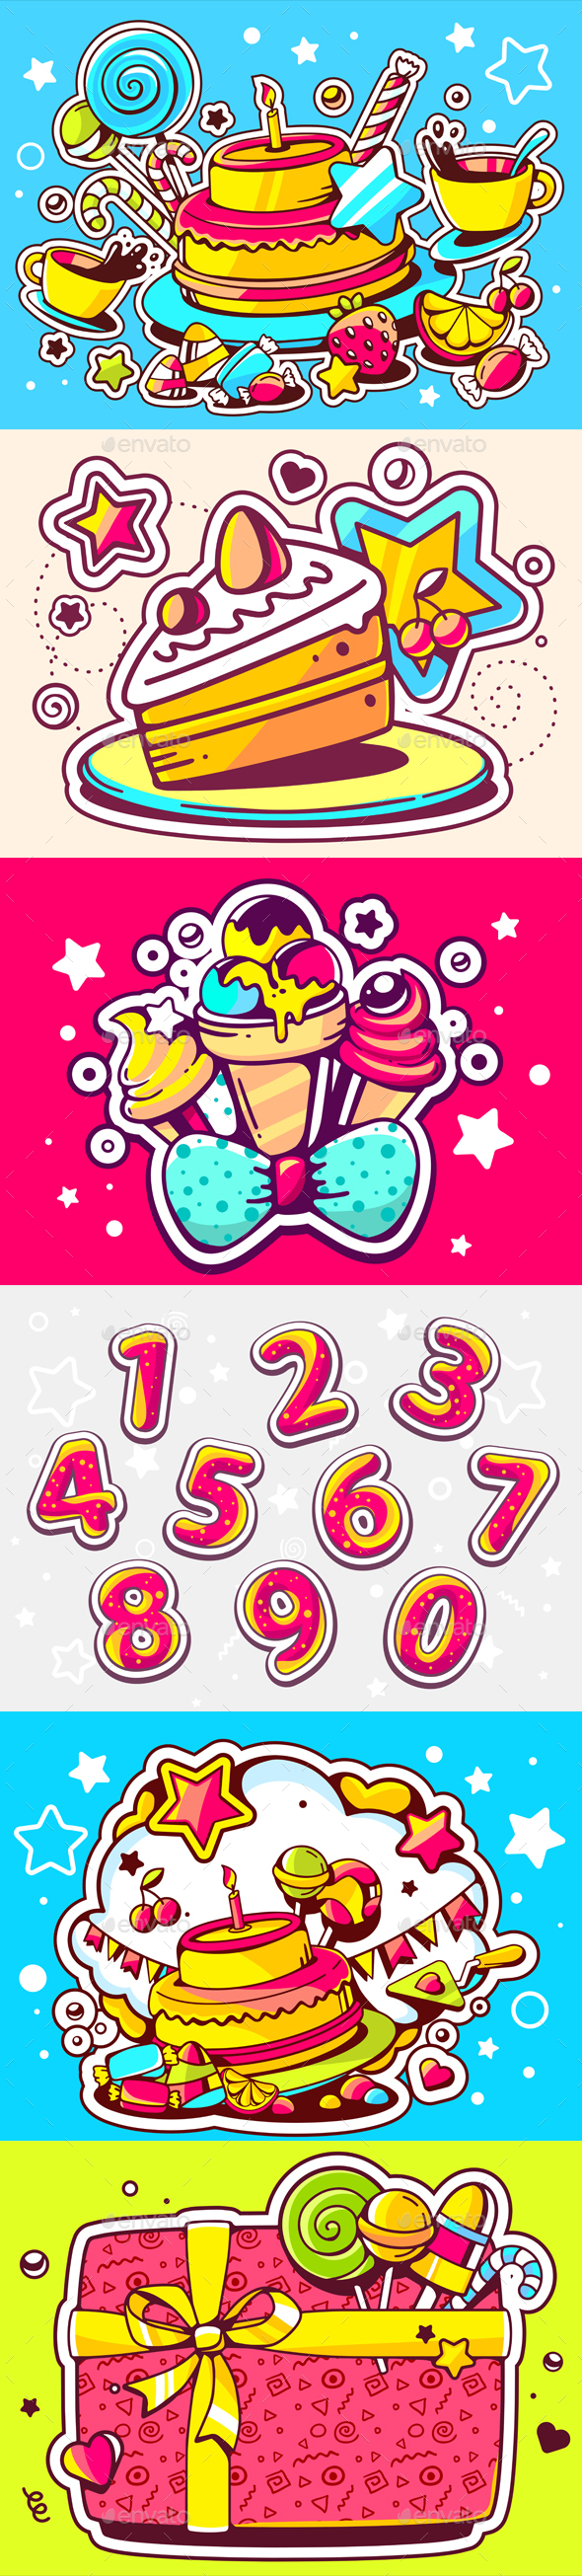 Happy Birthday Illustrations with Numbers